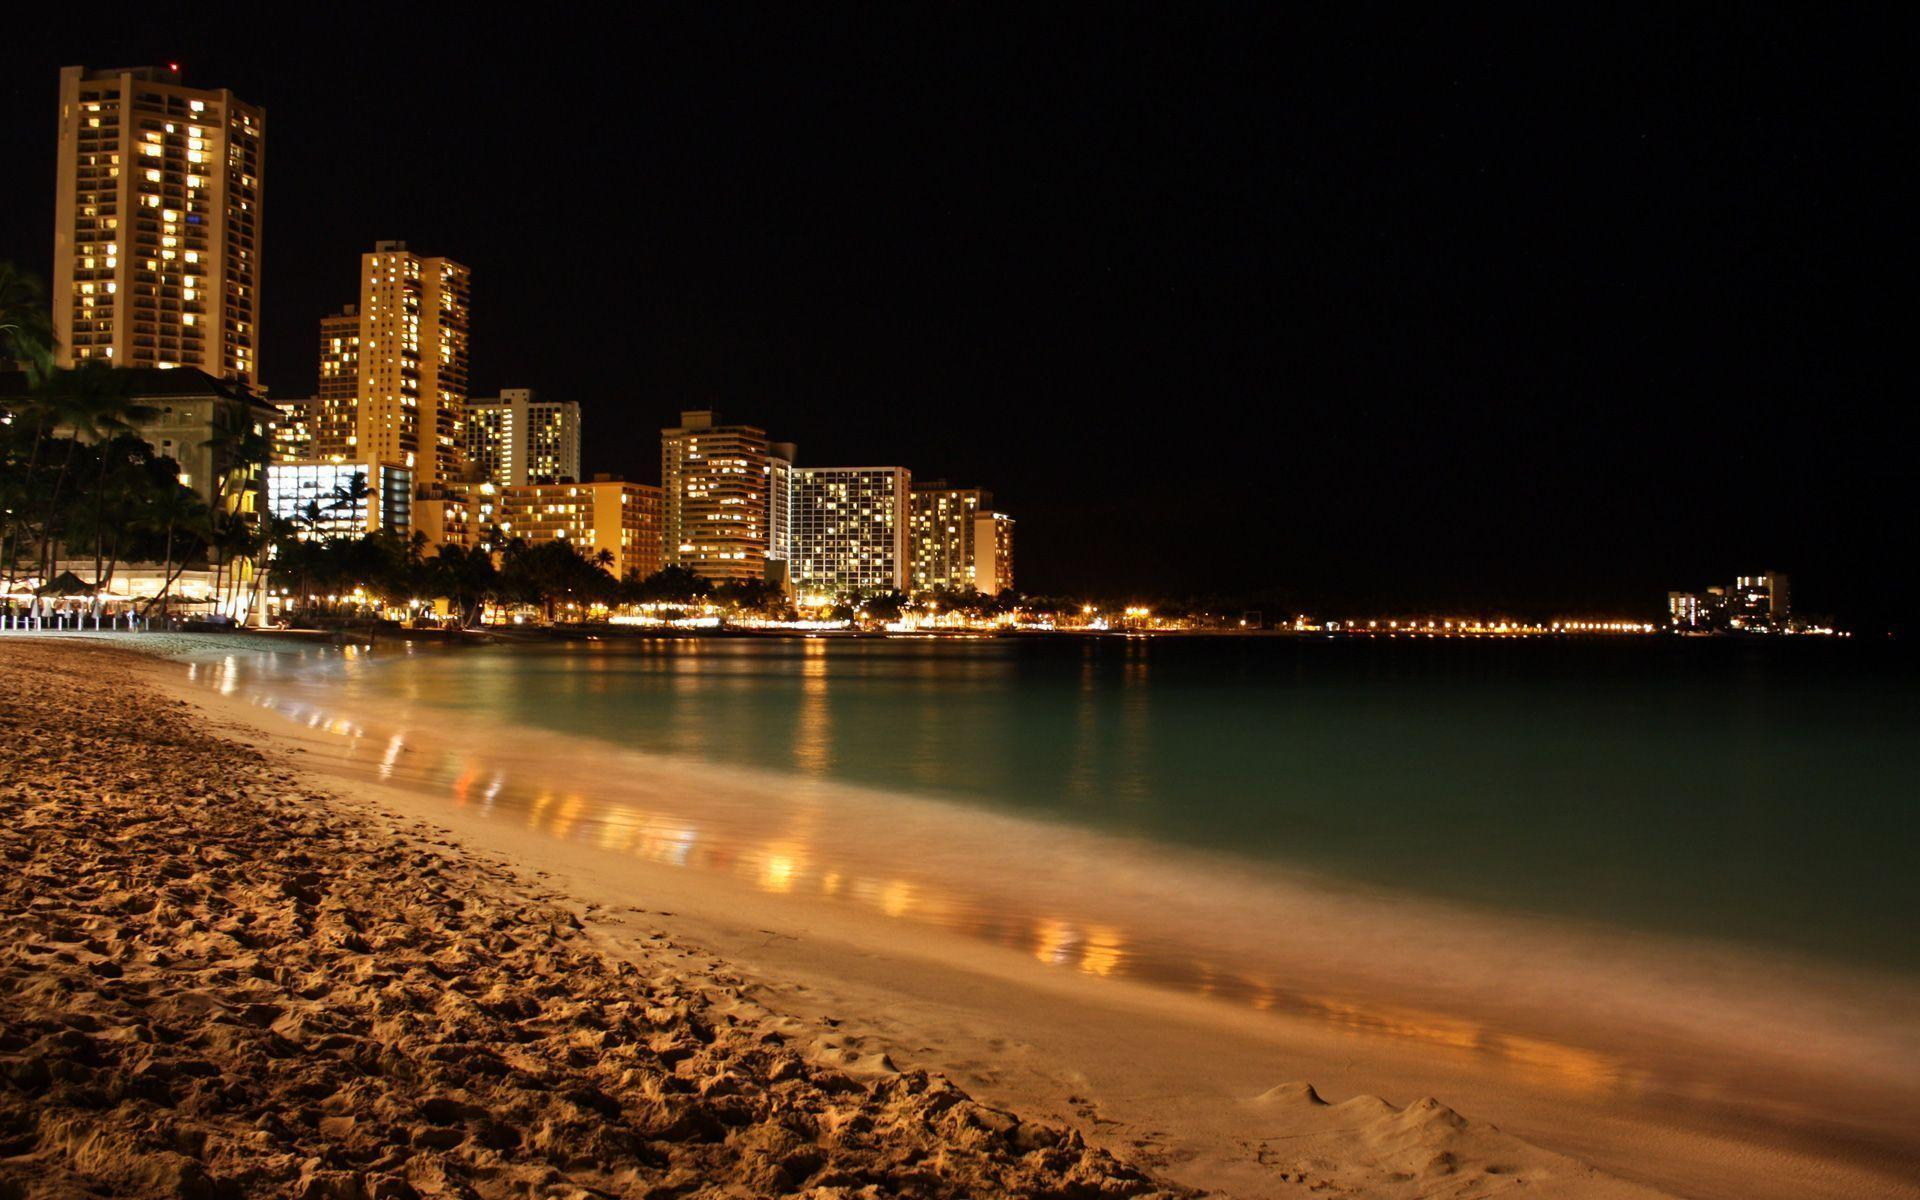 night city beach in -#main